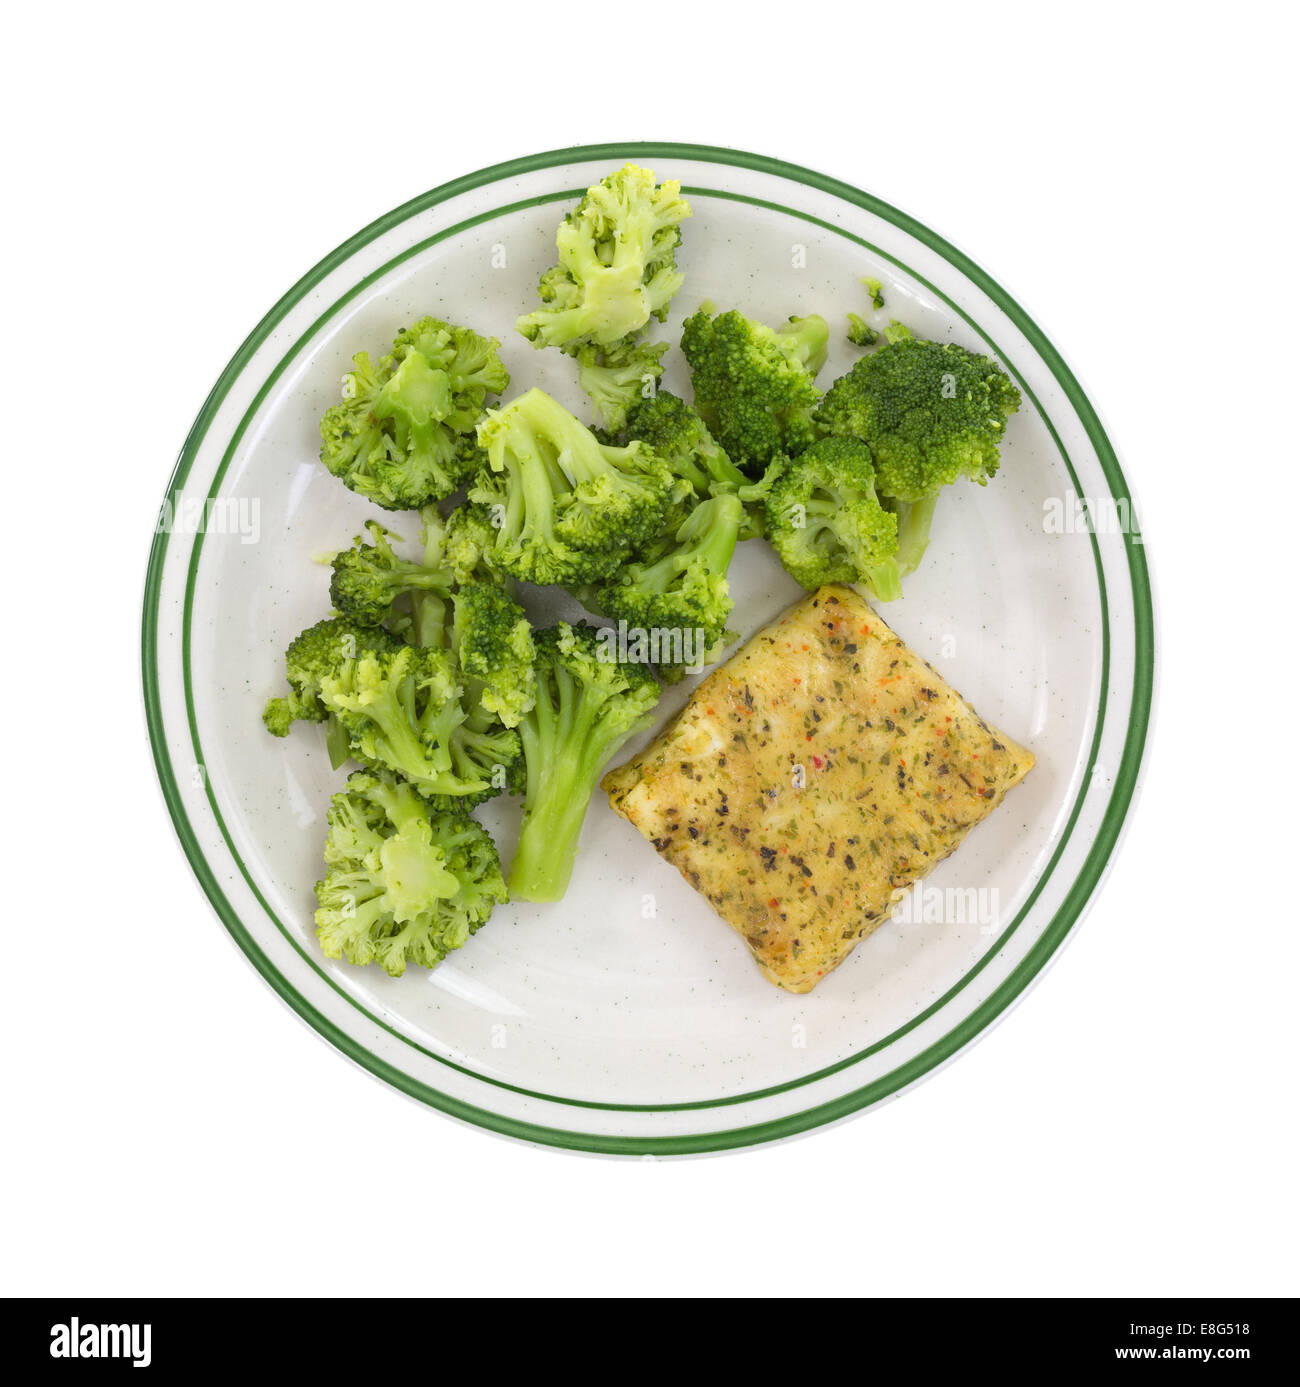 Top view of a meal of baked pollack with broccoli on plate against a white background. - Stock Image